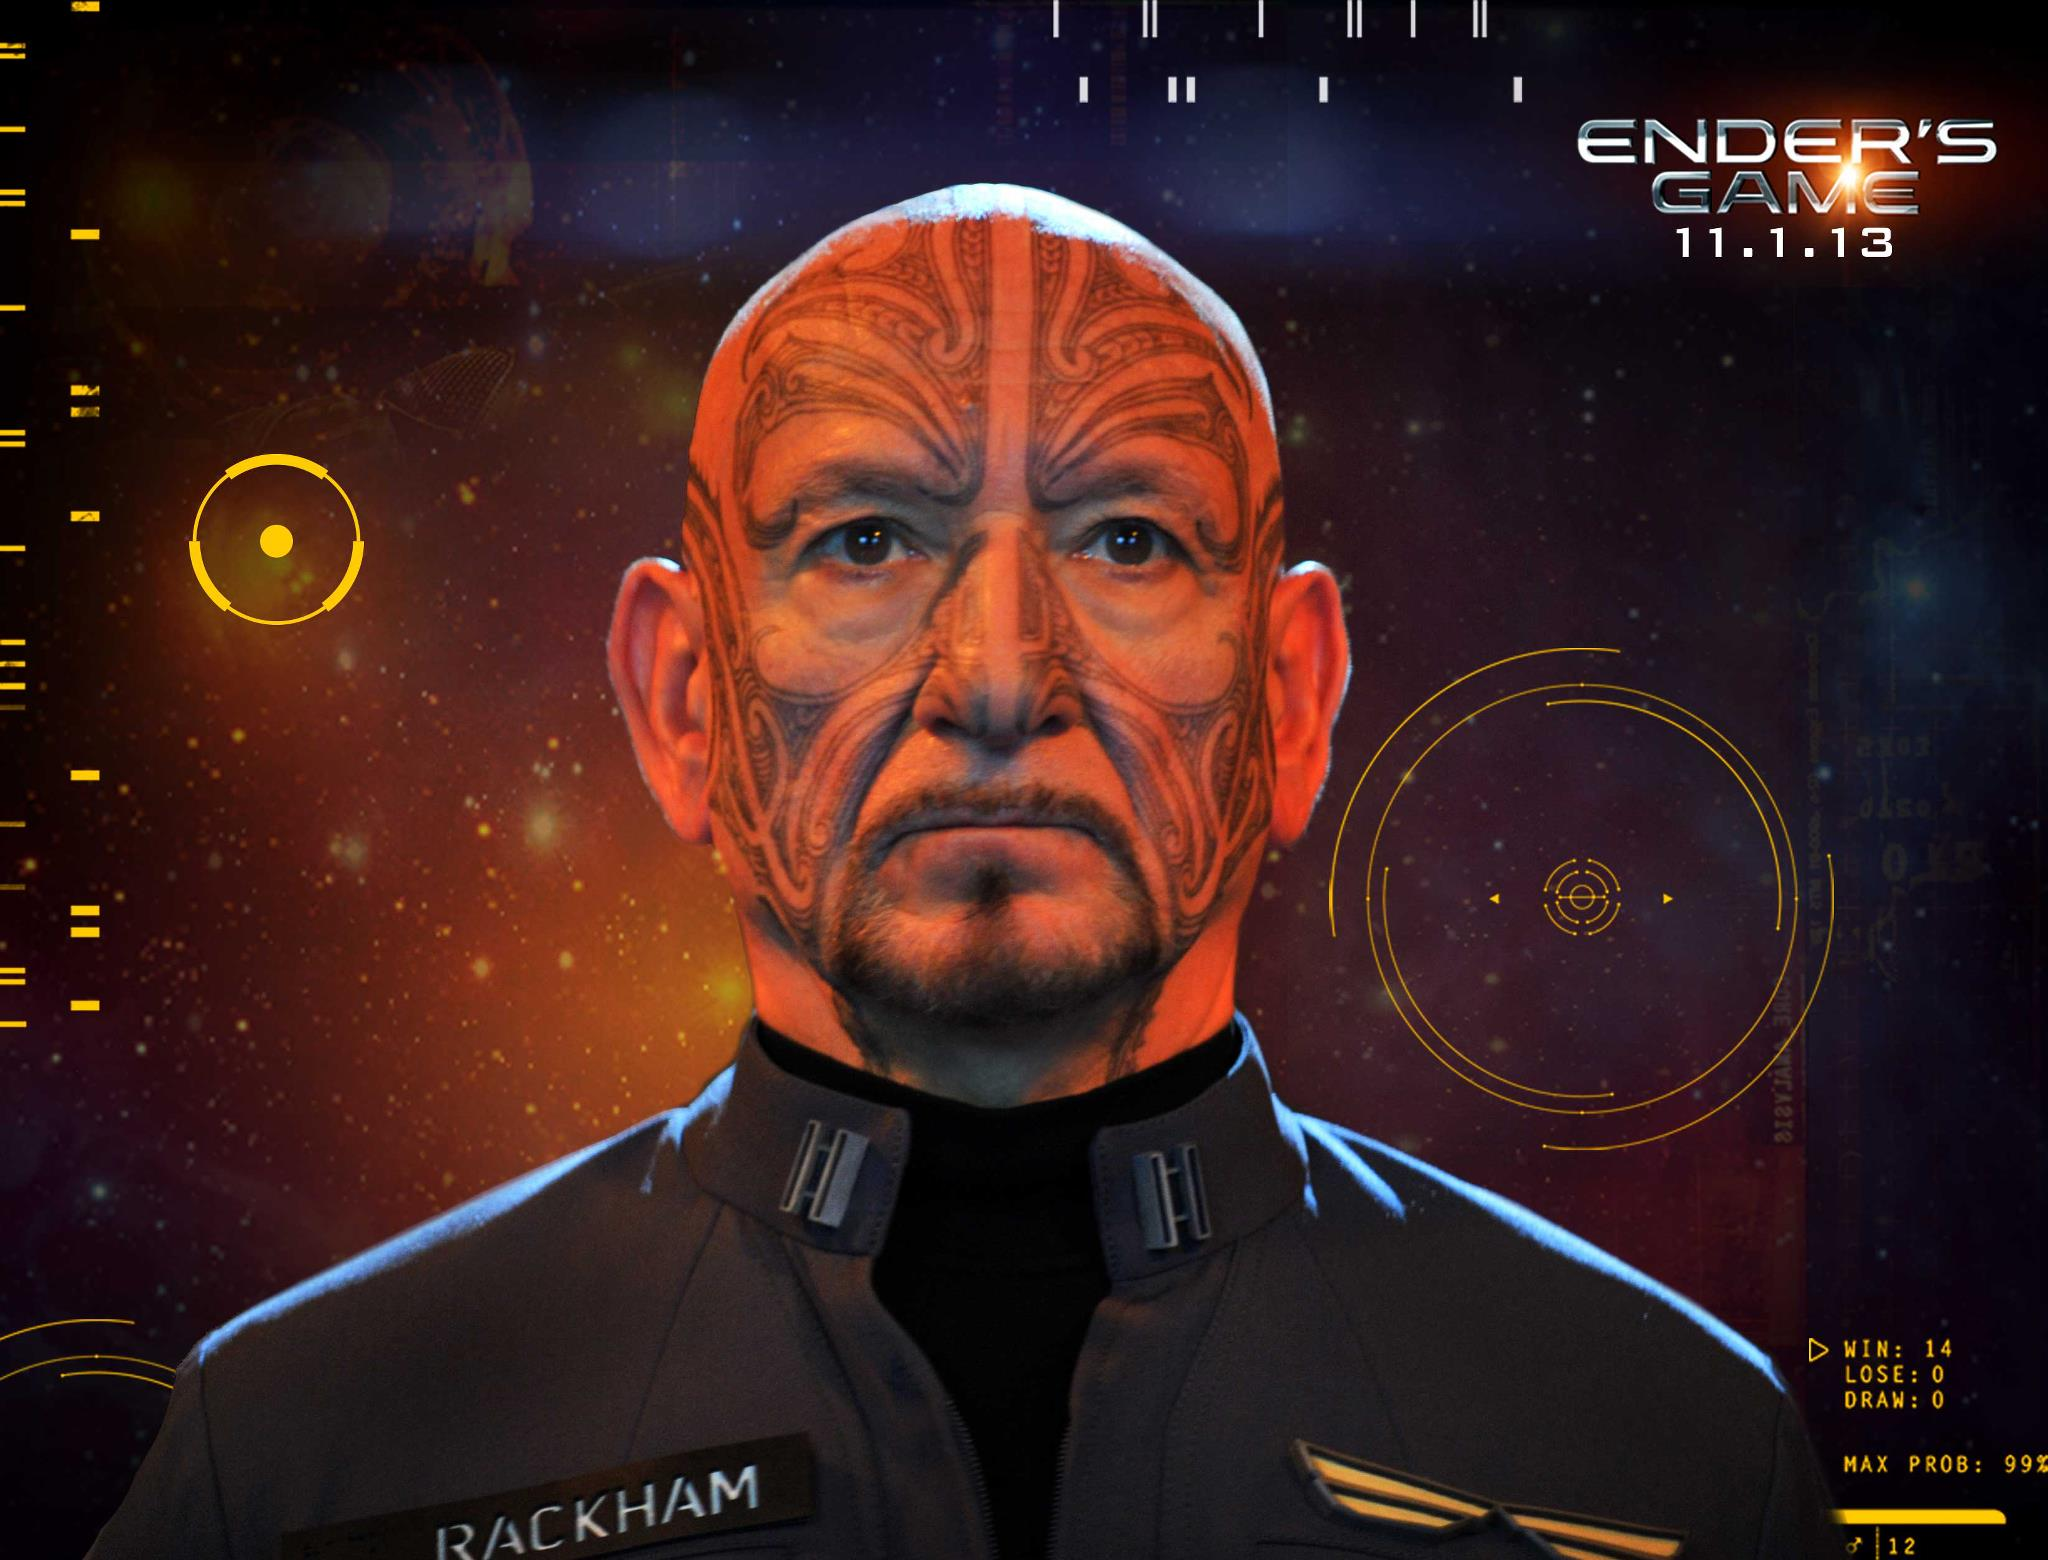 Ben Kingsley as Mazer Rackham - Ender's Game movie